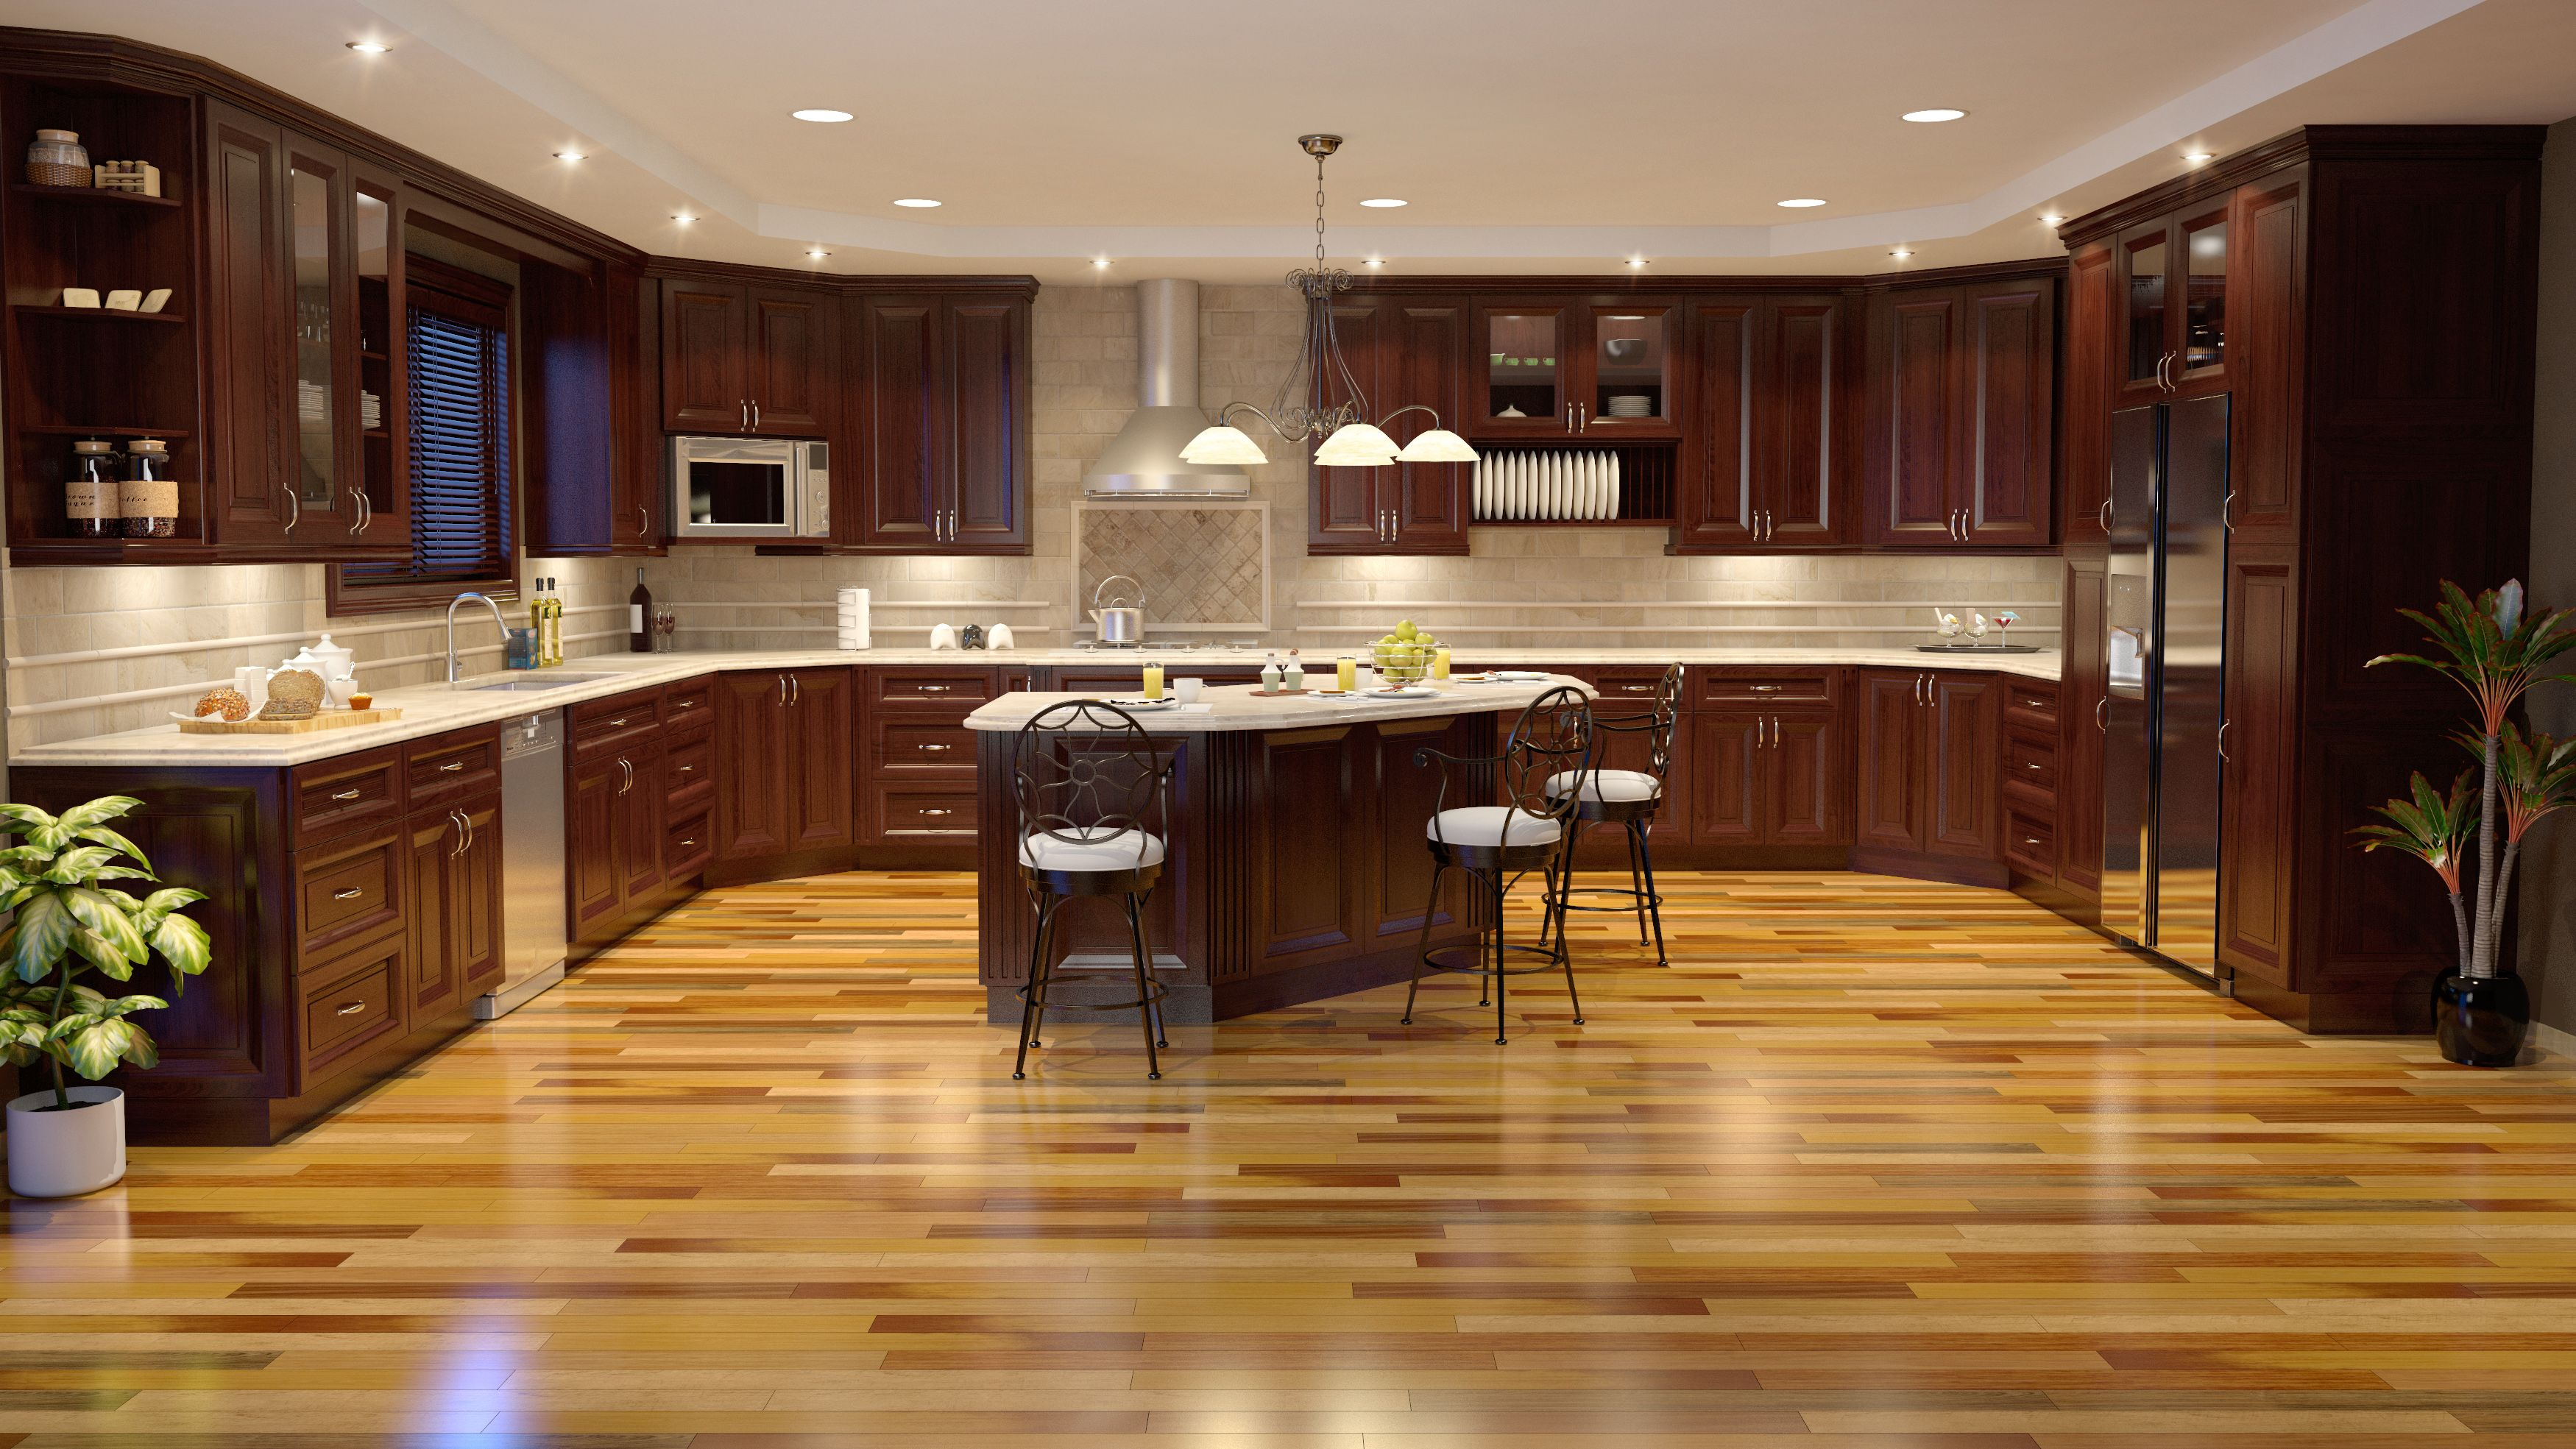 Boardwalk Cabinet Brazilian Teak Natural Color Beautiful Flooring Kitchen Remodel Flooring